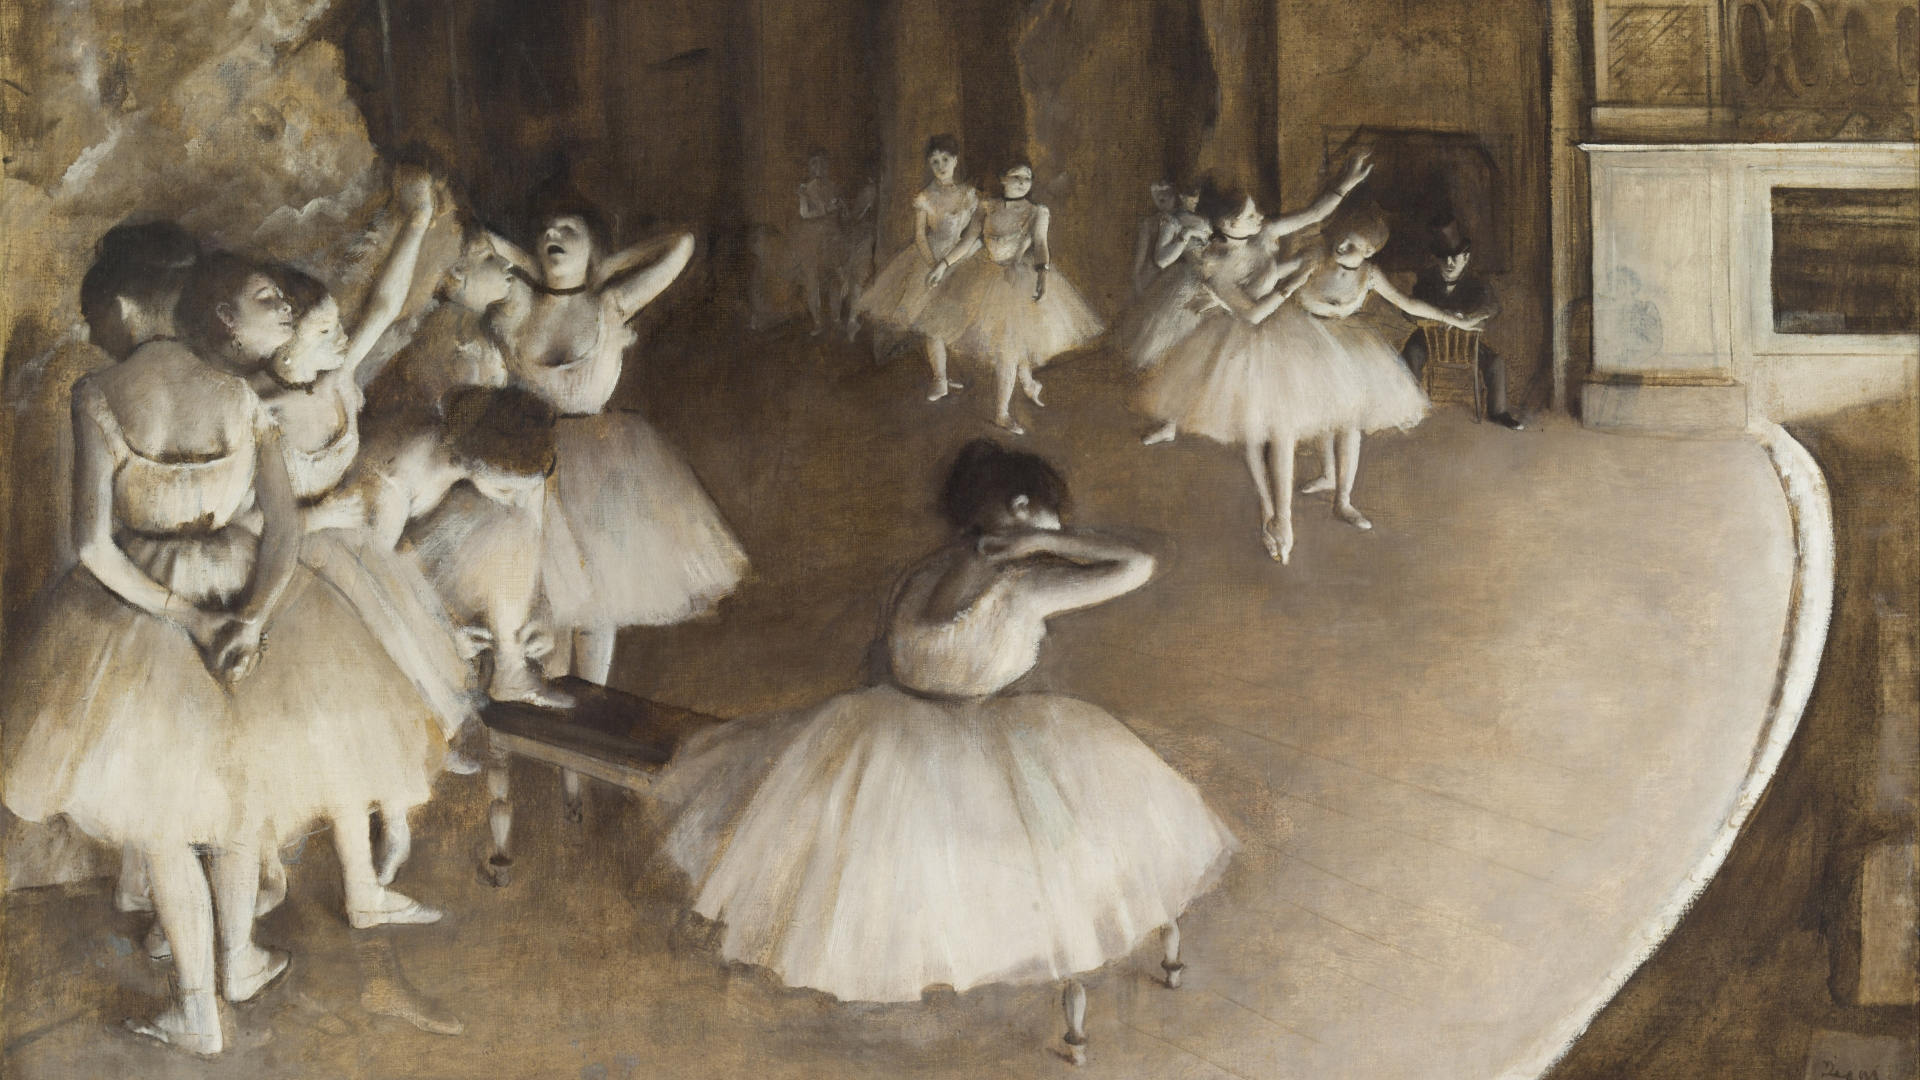 'Rehearsal on the Stage' by Edgar Degas, 1874. (Credit: Fine Art Images/Heritage Images/Getty Images)